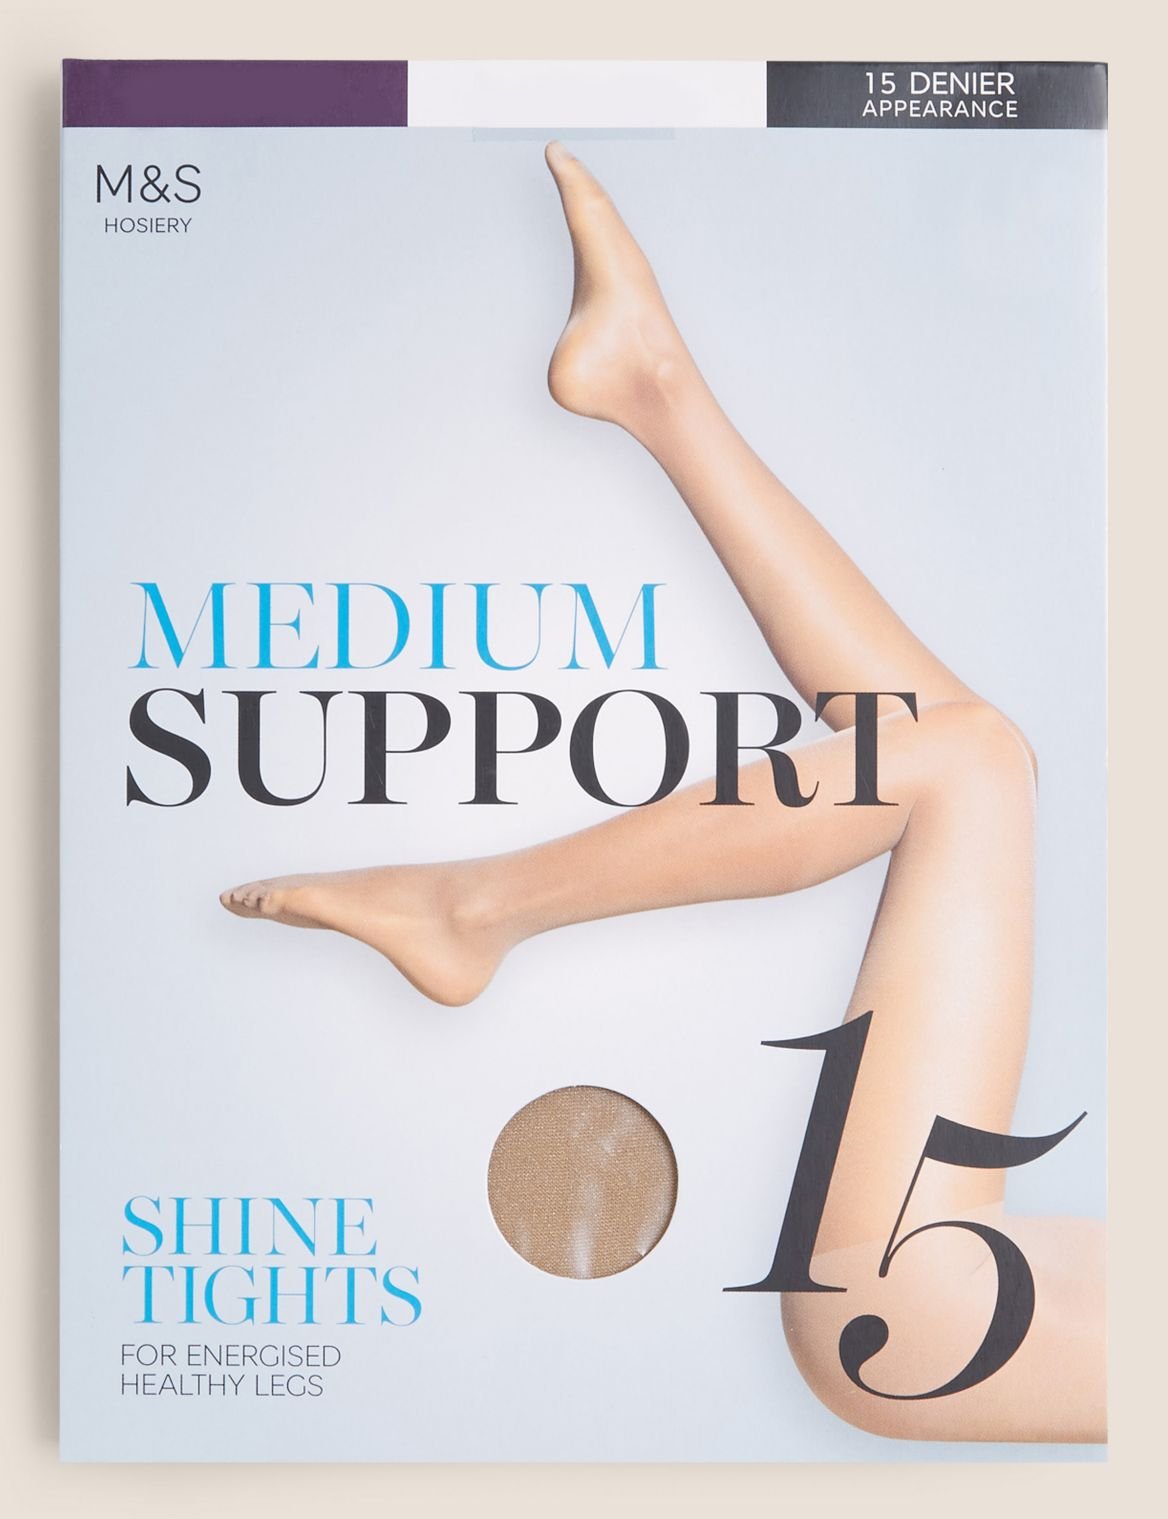 15 Denier Medium Support Sheer Tights illusion